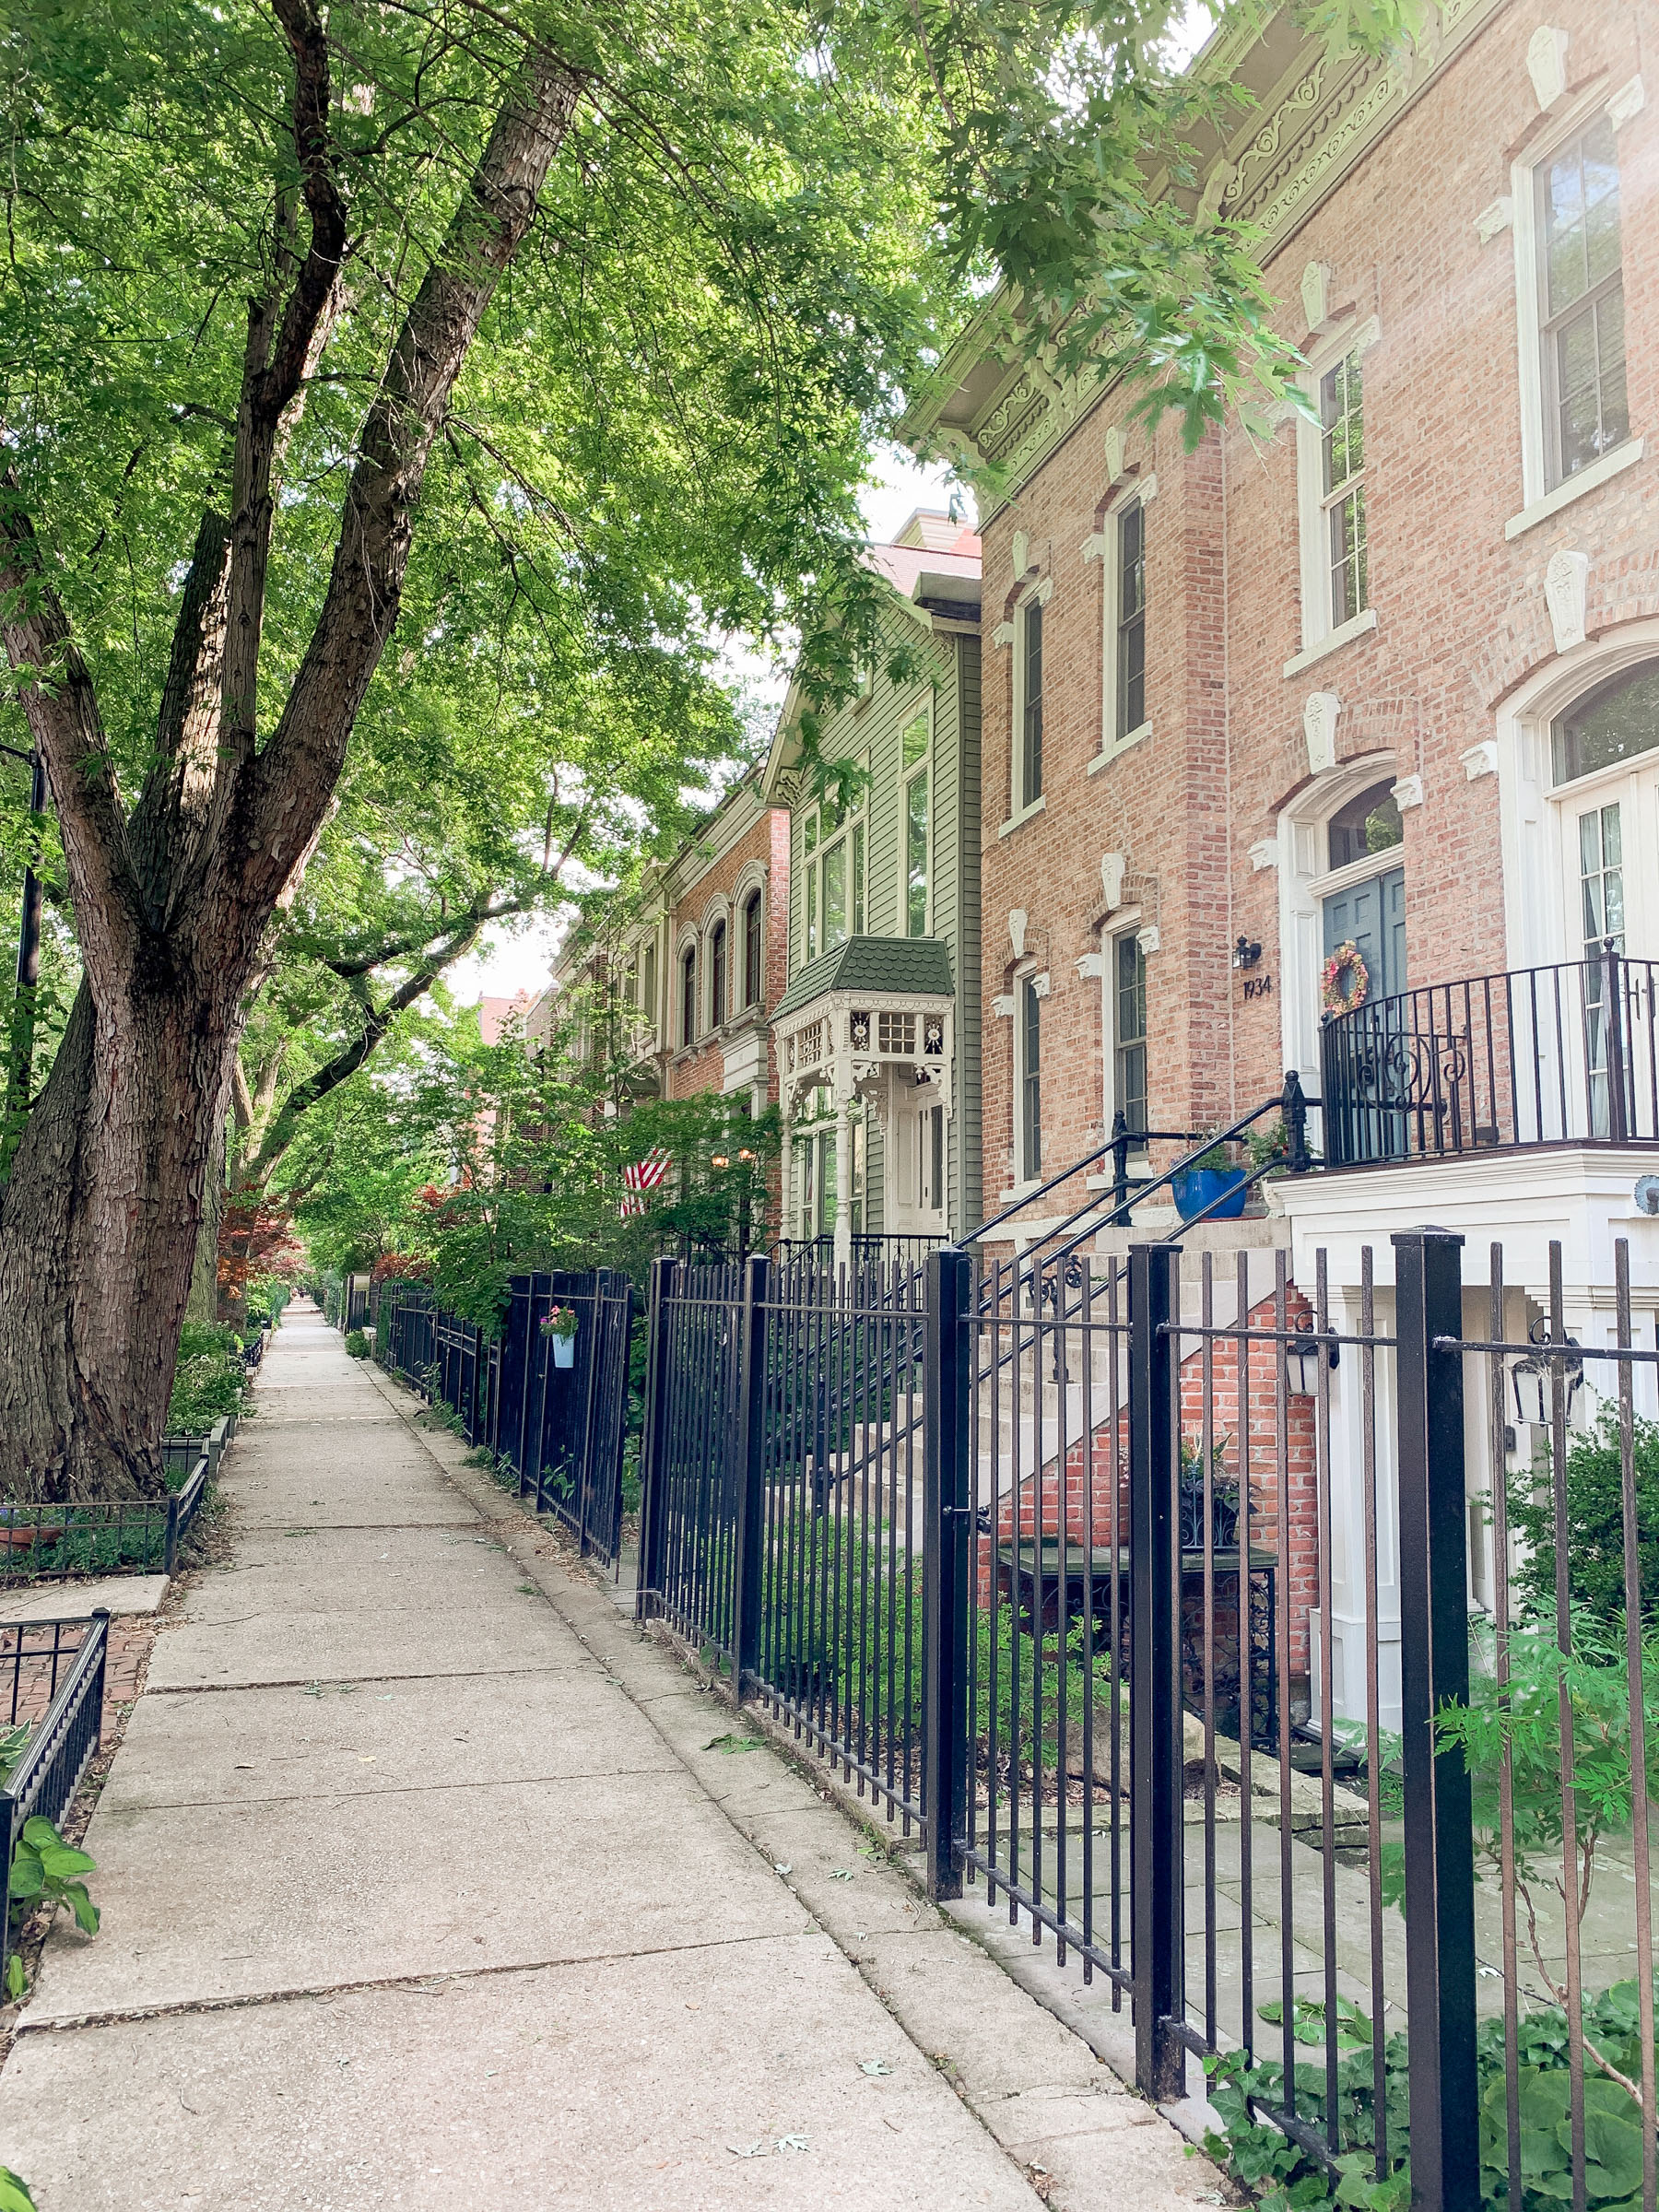 The Houses We Considered Before Buying Our Home by Kelly in the City